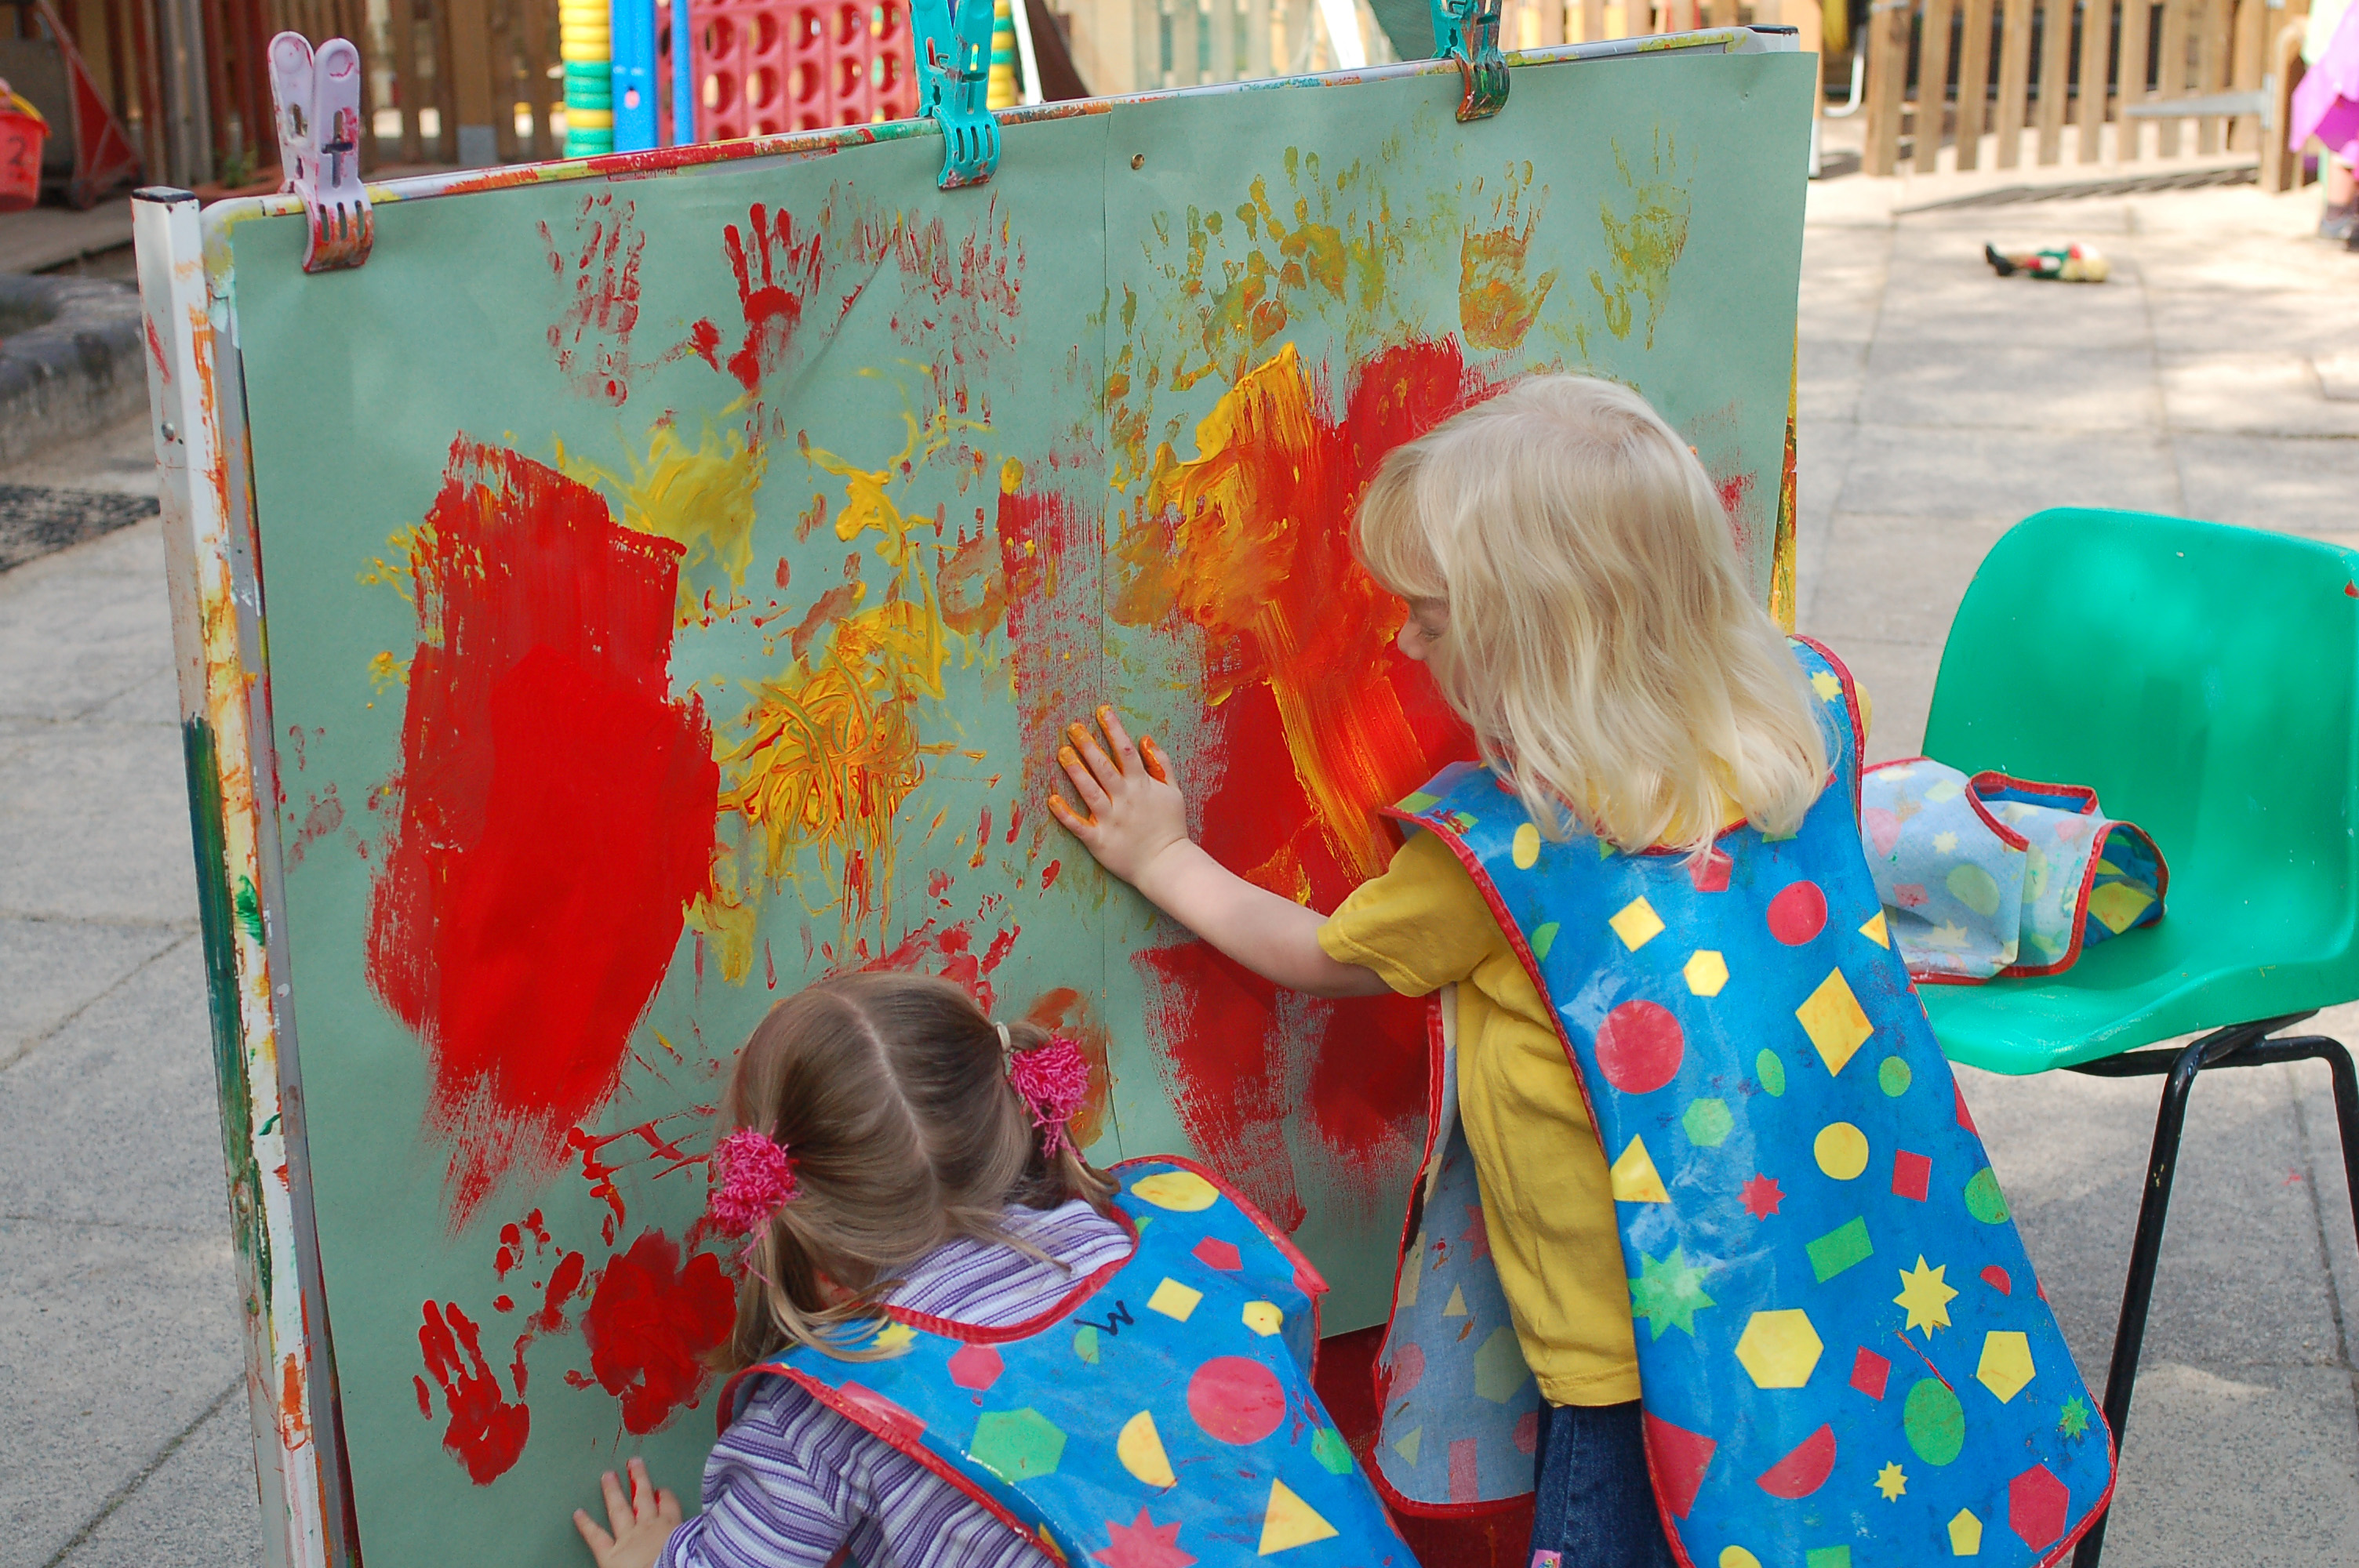 Painting with our hands